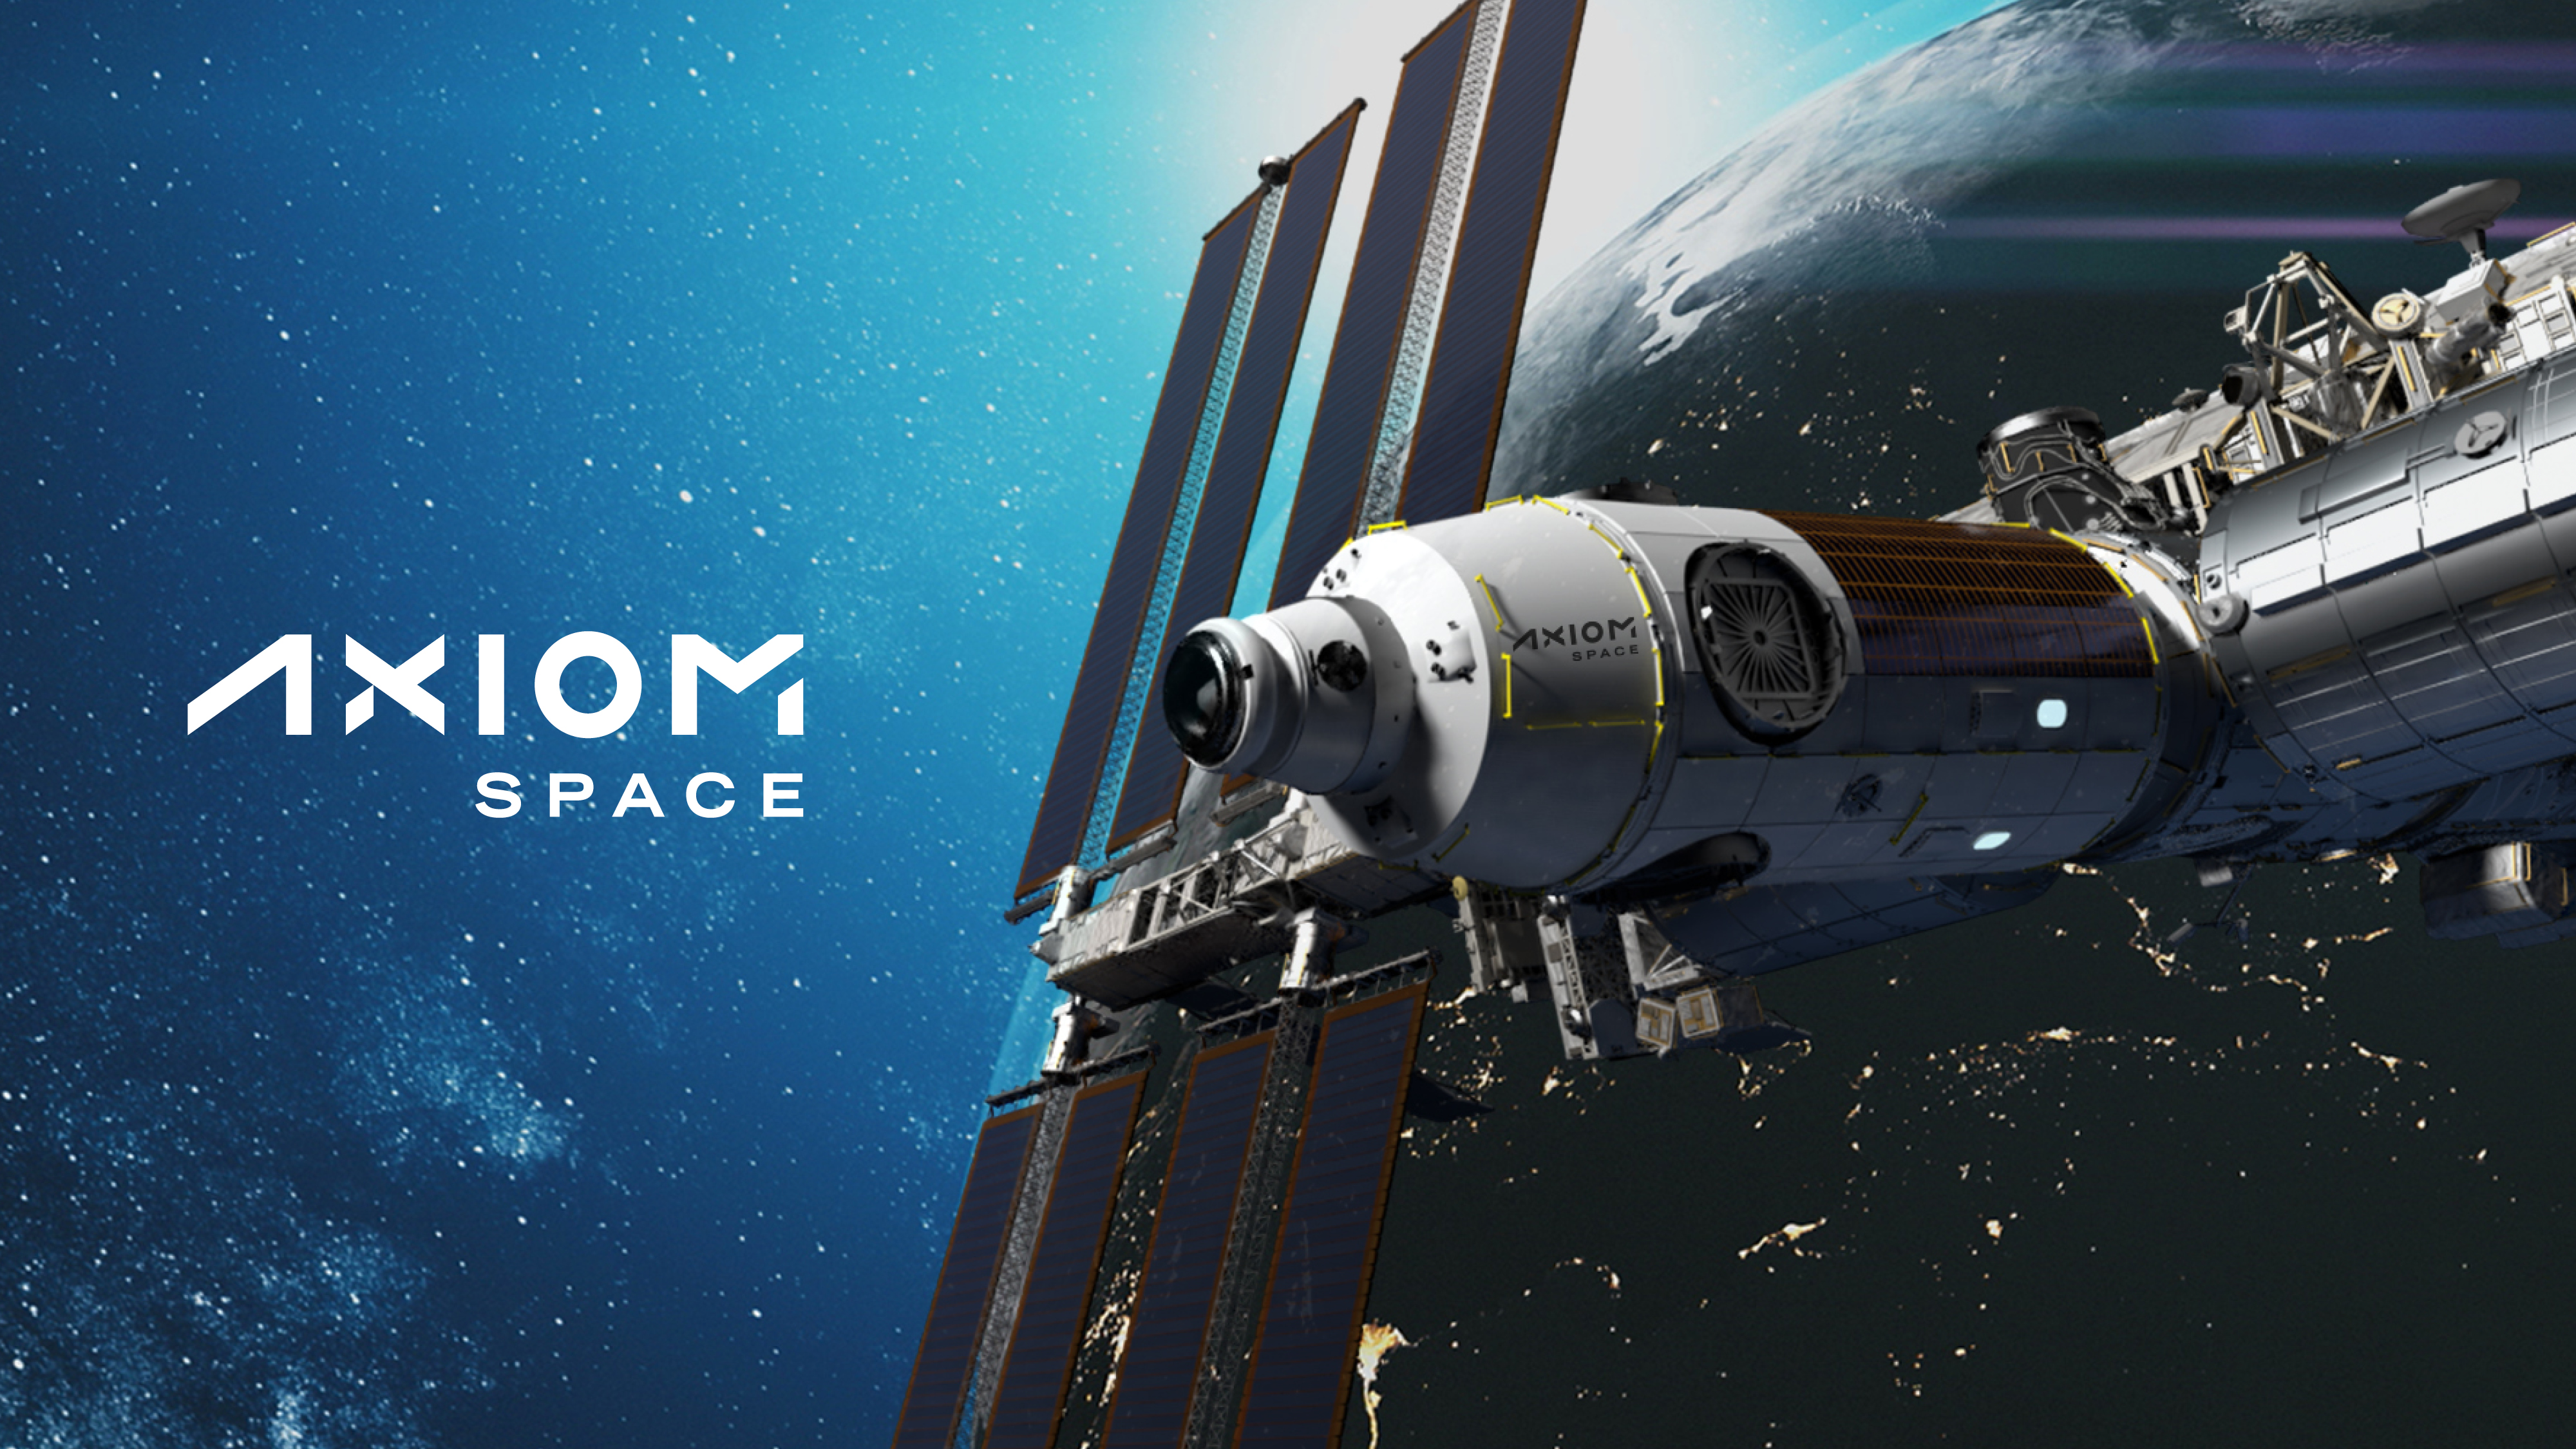 Axiom space station graphic and logo